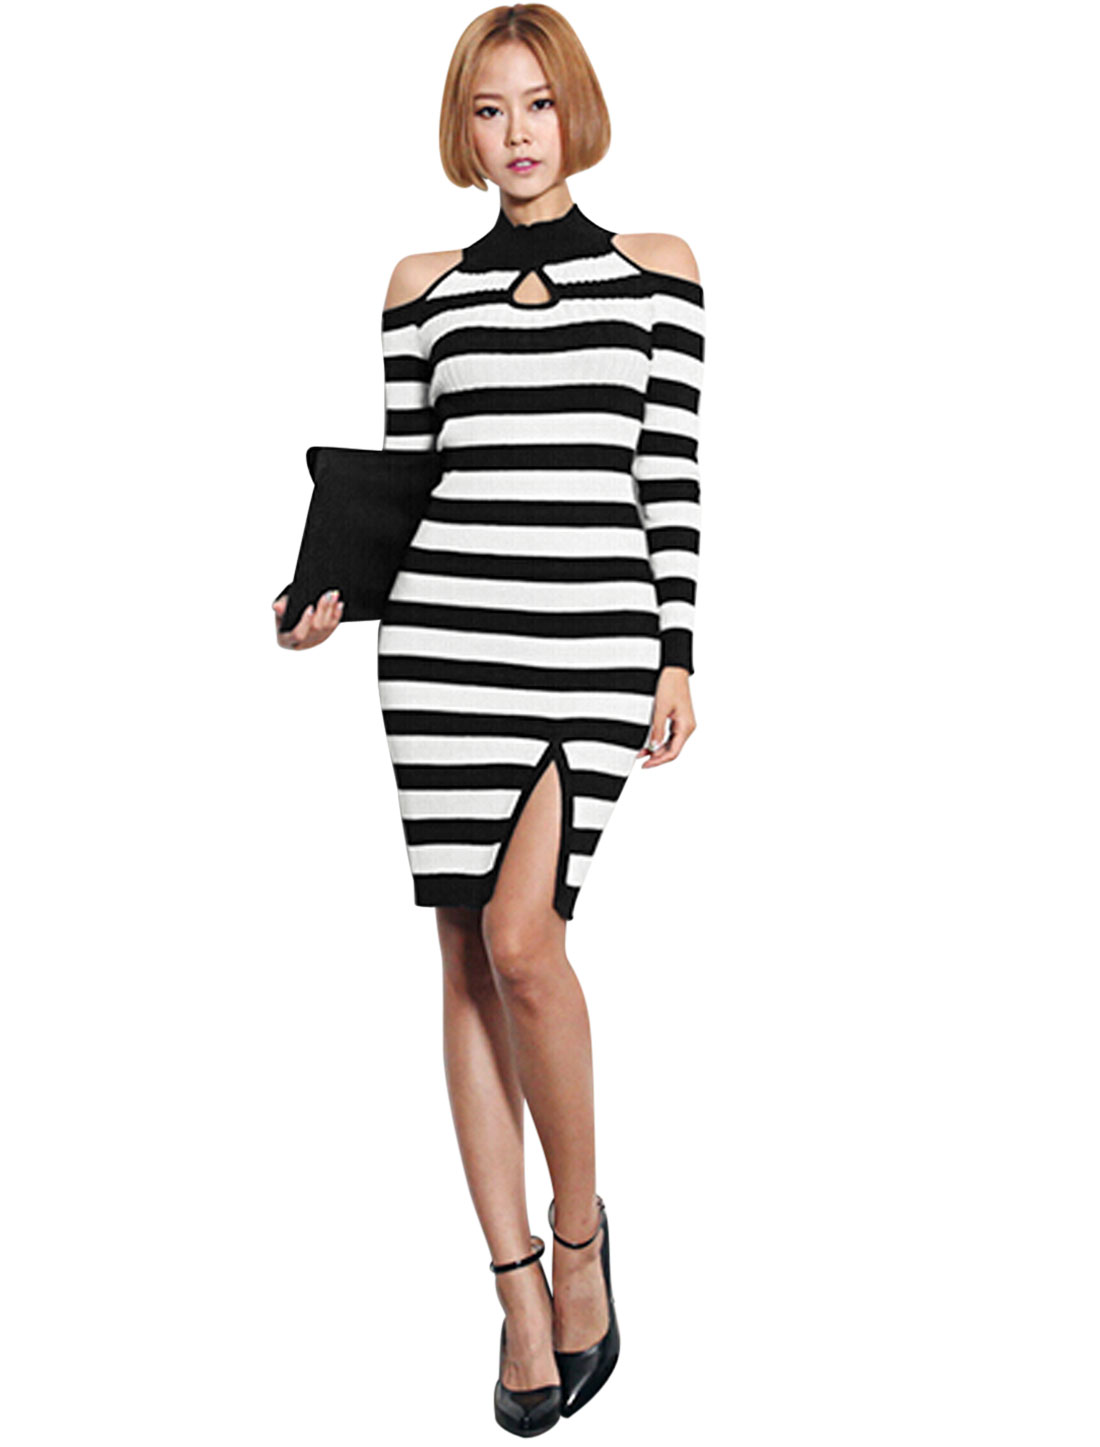 Stripes Cut Out Shoulder Mock Neck Knit Sheath Dress for Women Black White XS